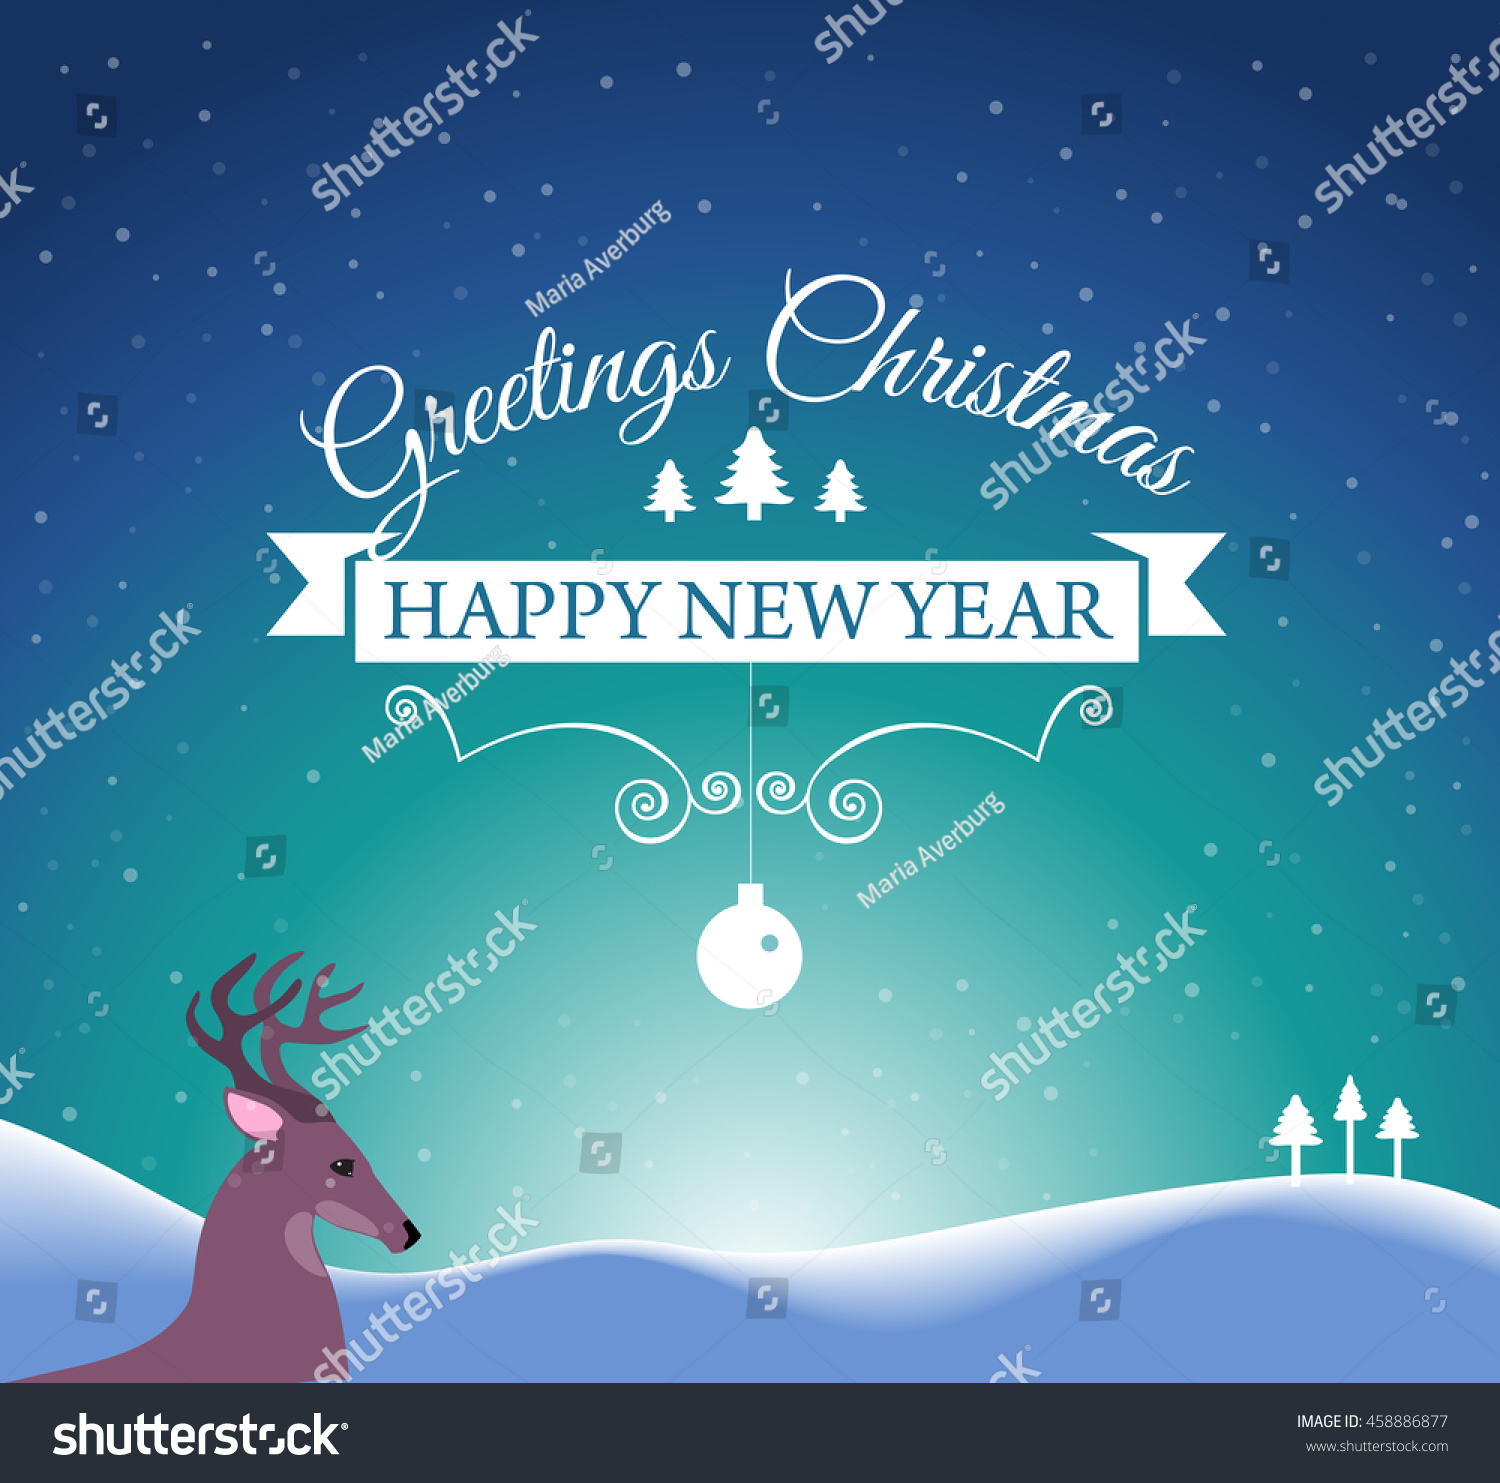 Merry Christmas Happy New Year Post Stock Illustration 458886877     Merry Christmas and Happy New Year post Card with designed text